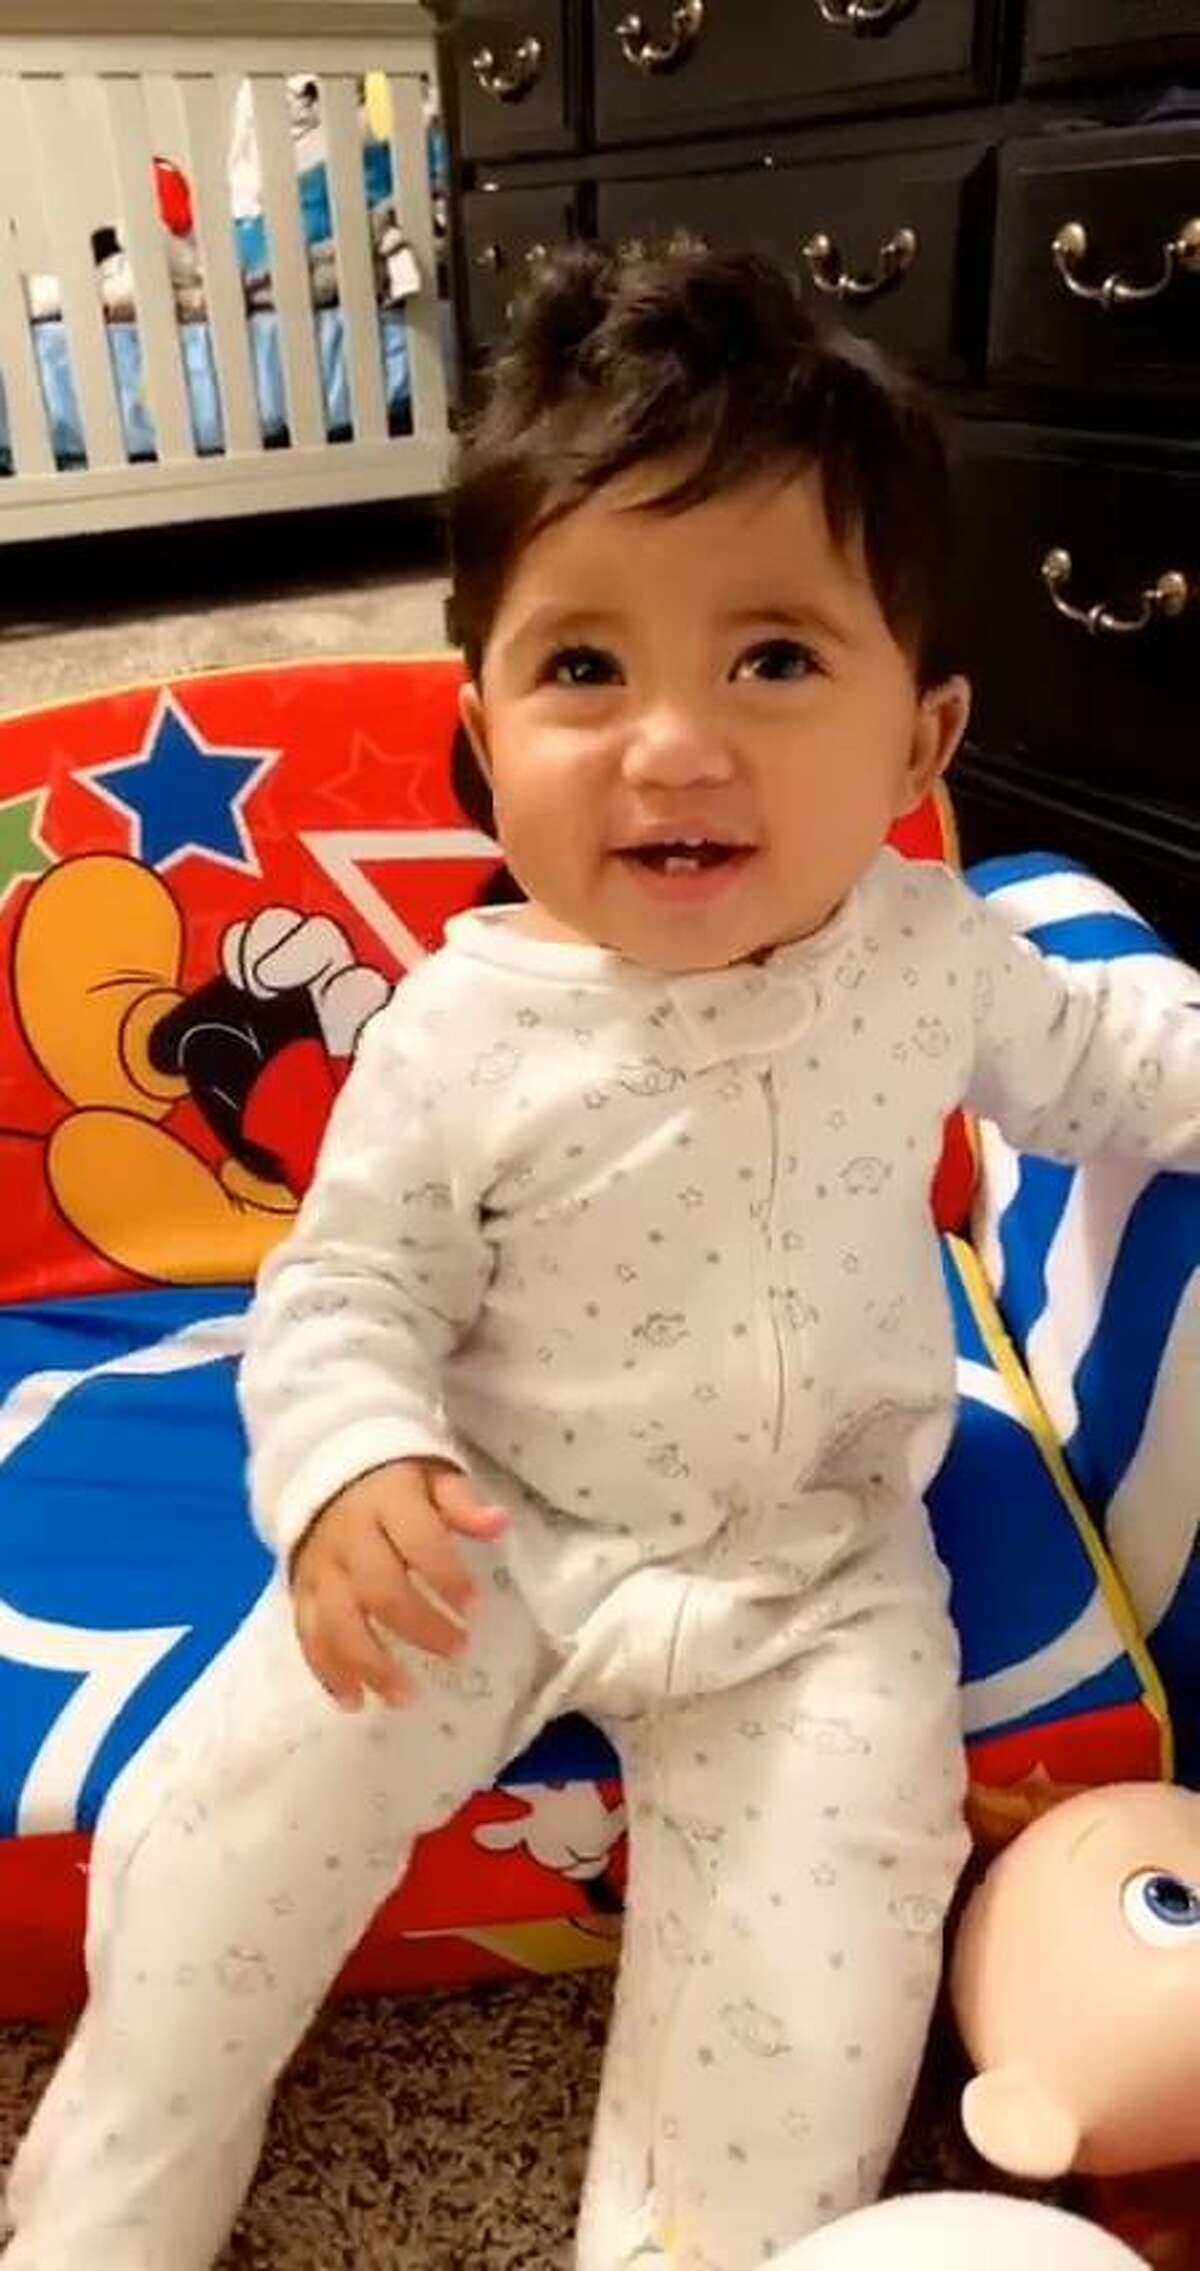 Nick Torres, 10 months, was found unconscious and unresponsive in a bathtub and later declared brain dead by Texas Children?'s Hospital doctors. After a legal fight over whether the hospital is obligated to provide treatment to keep the boy?'s heart functioning, the family plans to continue such mechanical support at home following his discharge by the hospital Monday.